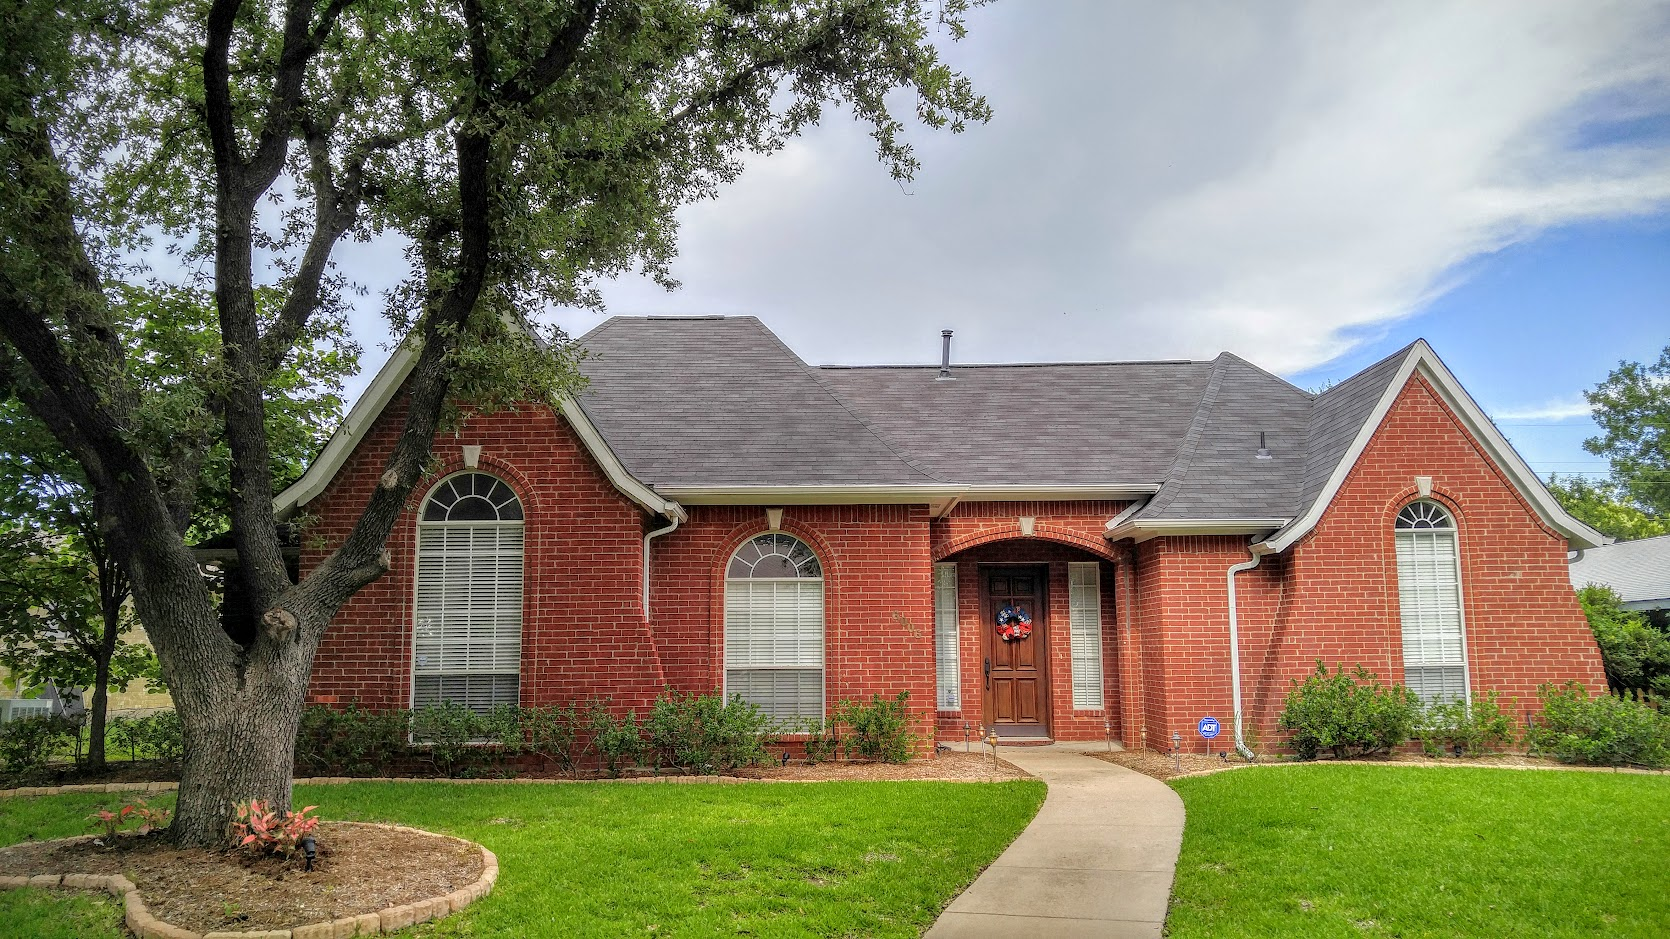 6006 Green Oaks, <a href='http://www.birdsongrealty.com/index.php?types[]=1&types[]=2&areas[]=city:Plano&beds=0&baths=0&min=0&max=100000000&map=0&quick=1&submit=Search' title='Search Properties in Plano'>Plano</a> - Lisa Birdsong